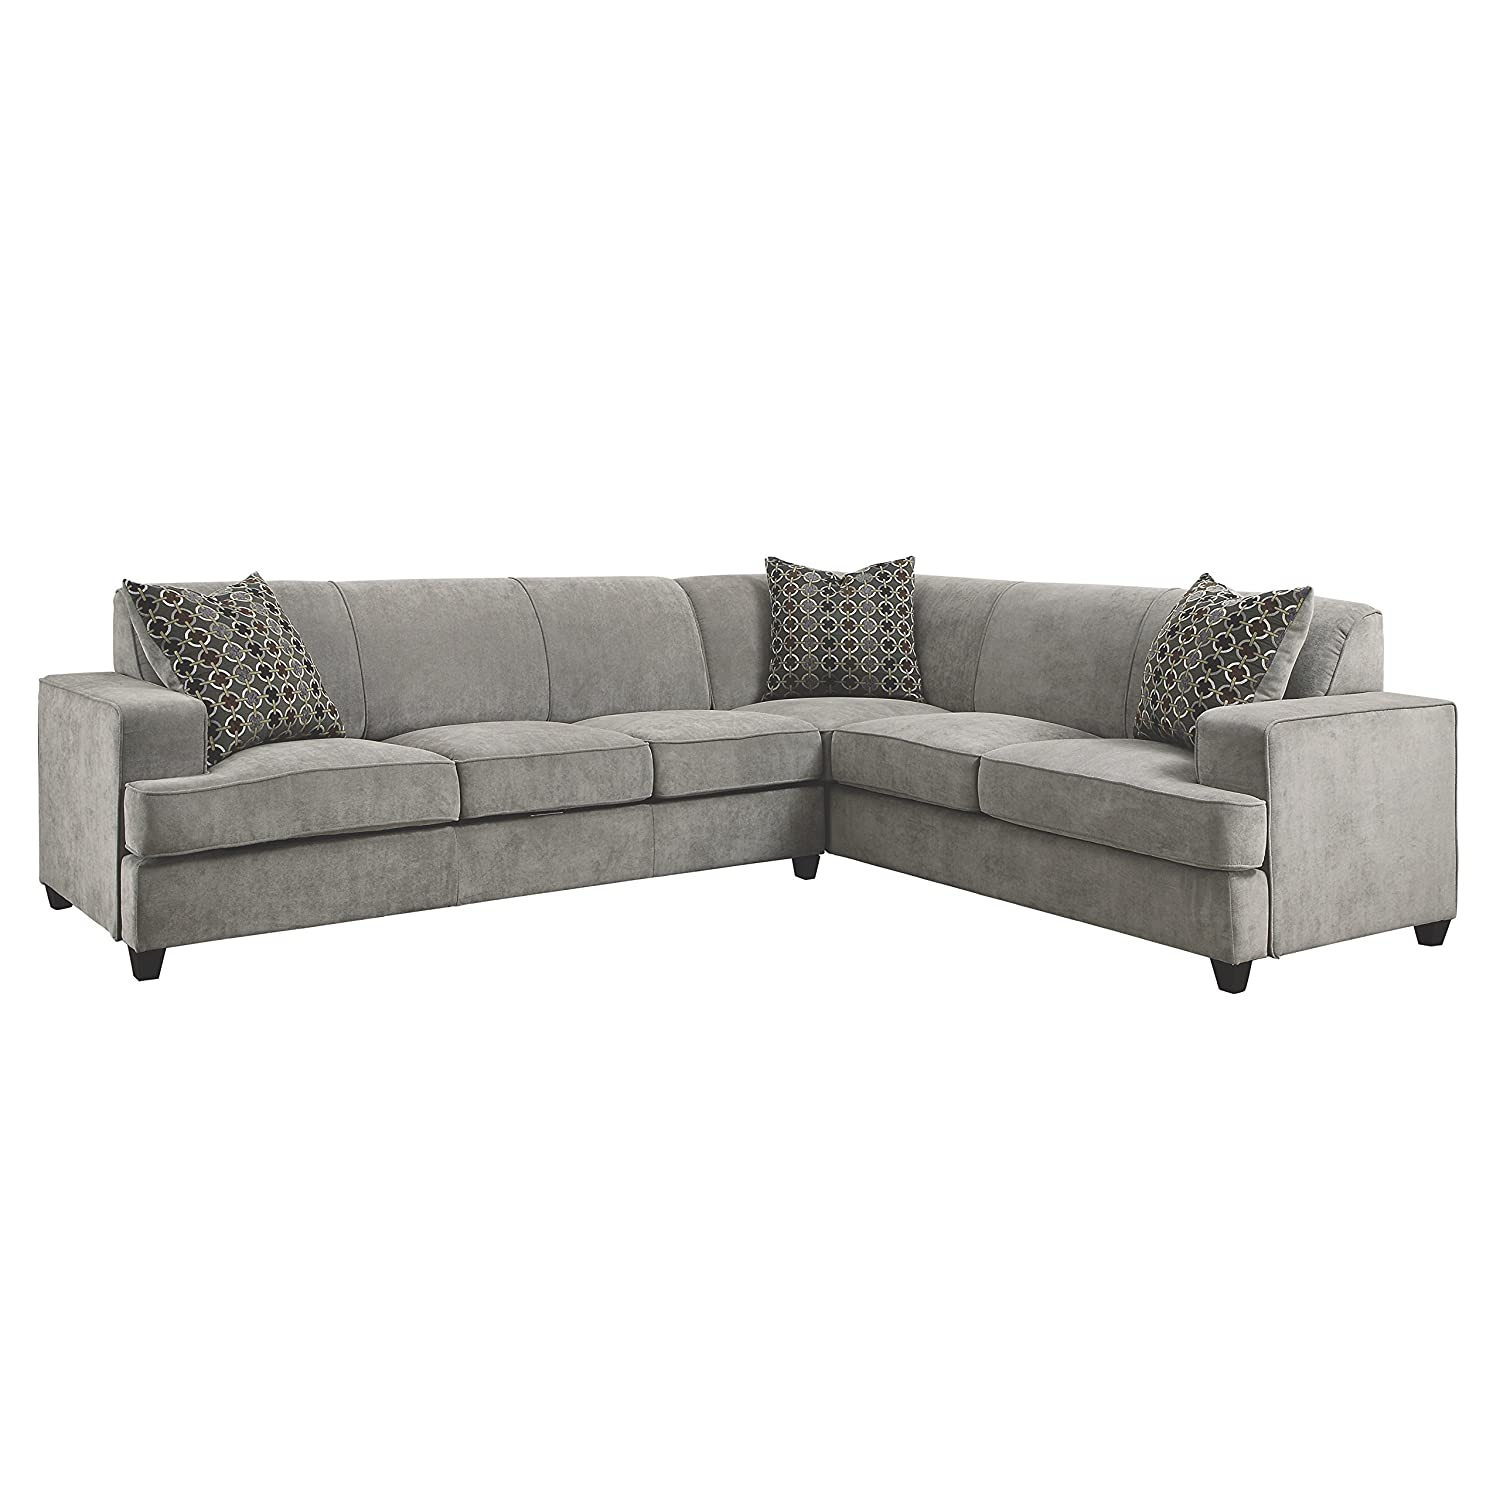 Amazon Coaster Home Furnishings Casual Sectional Sofa